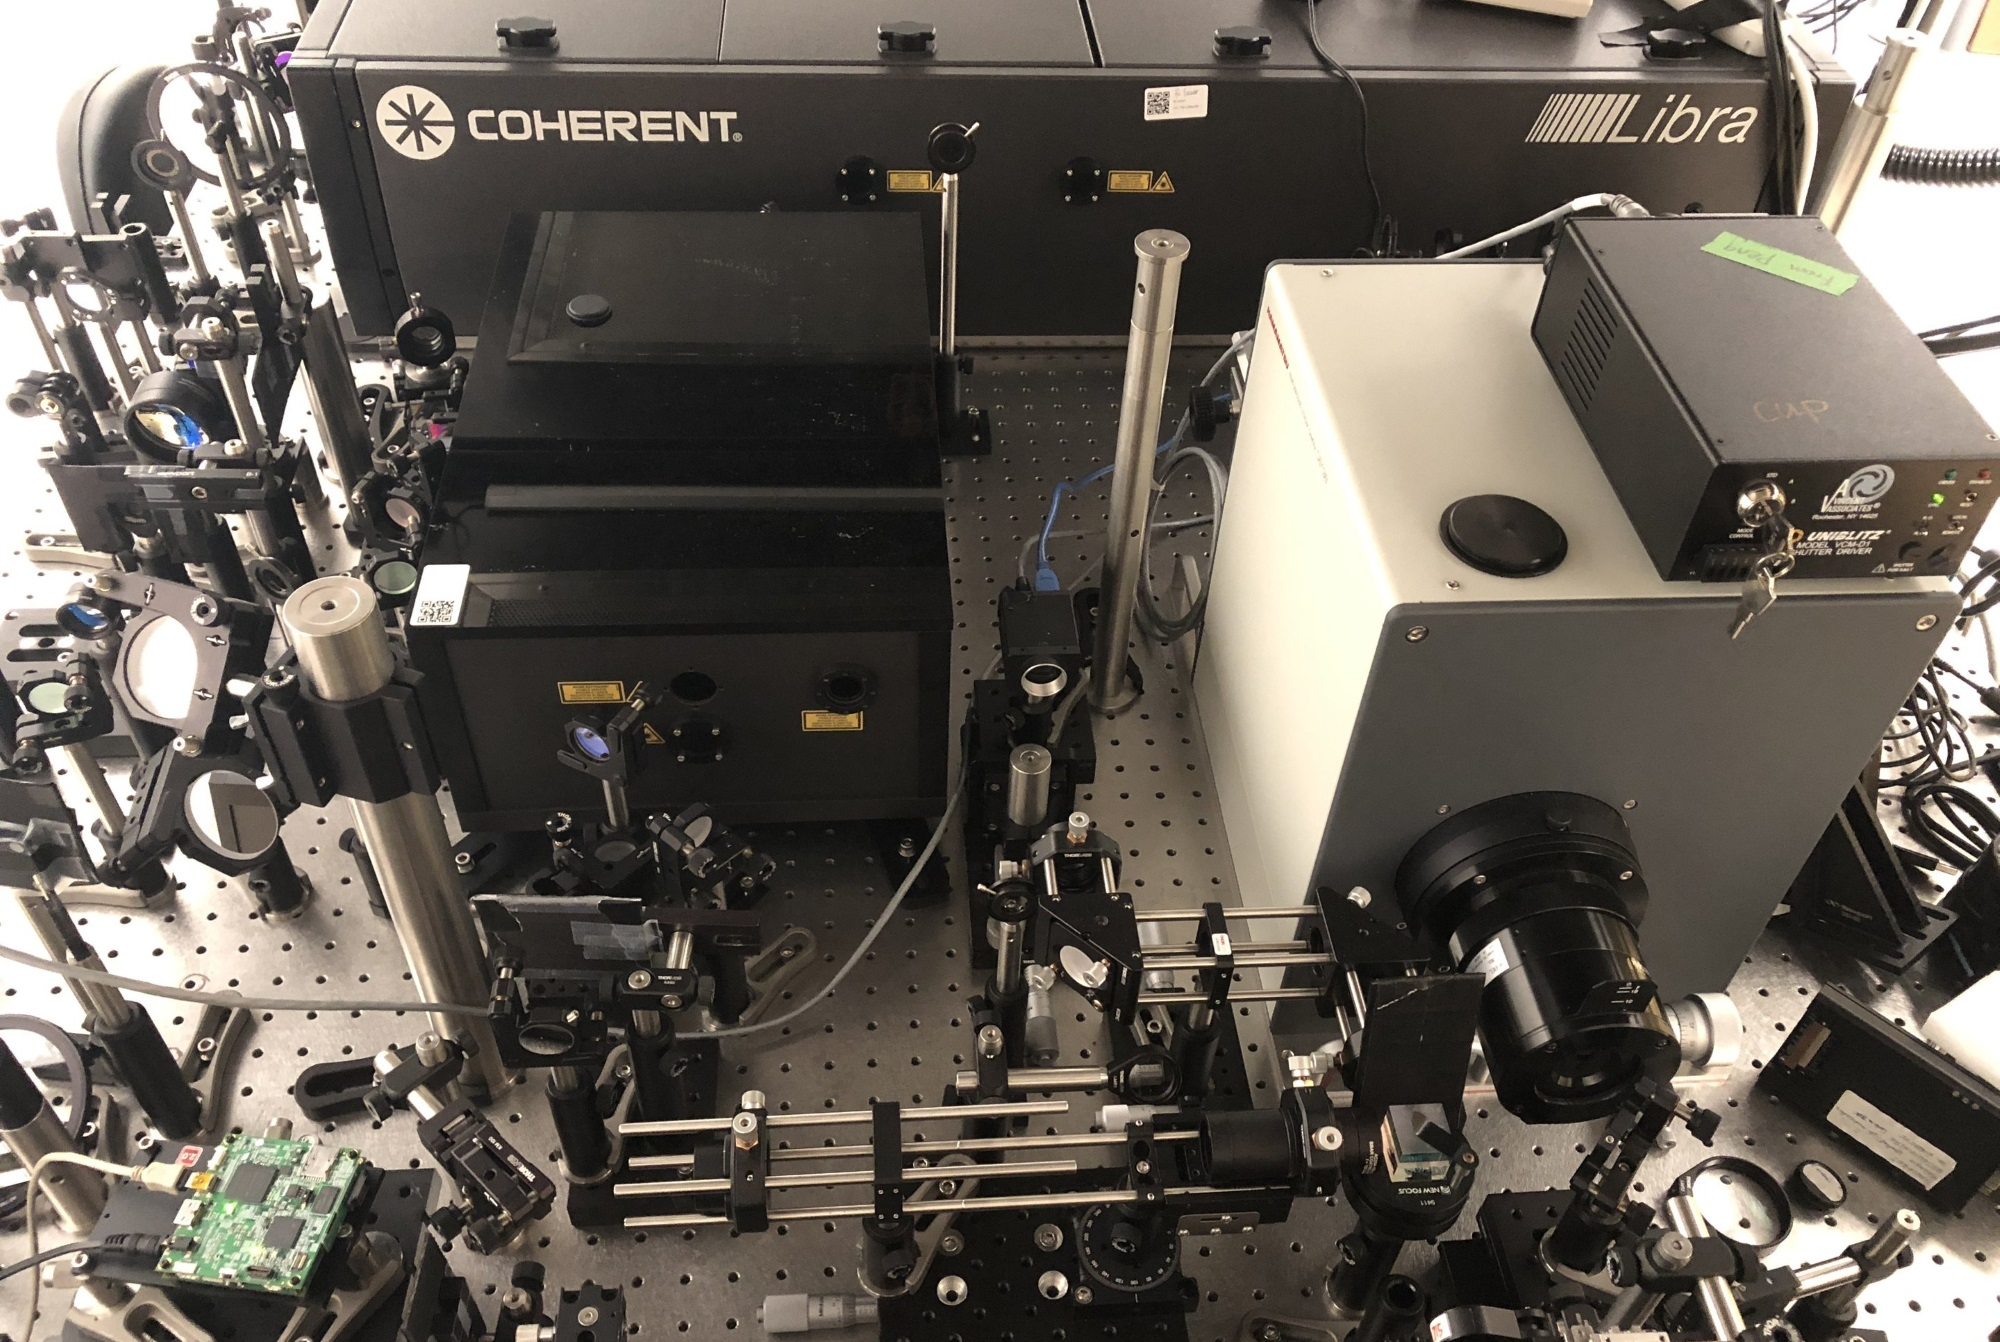 At 10 trillion frames per second, this camera captures light